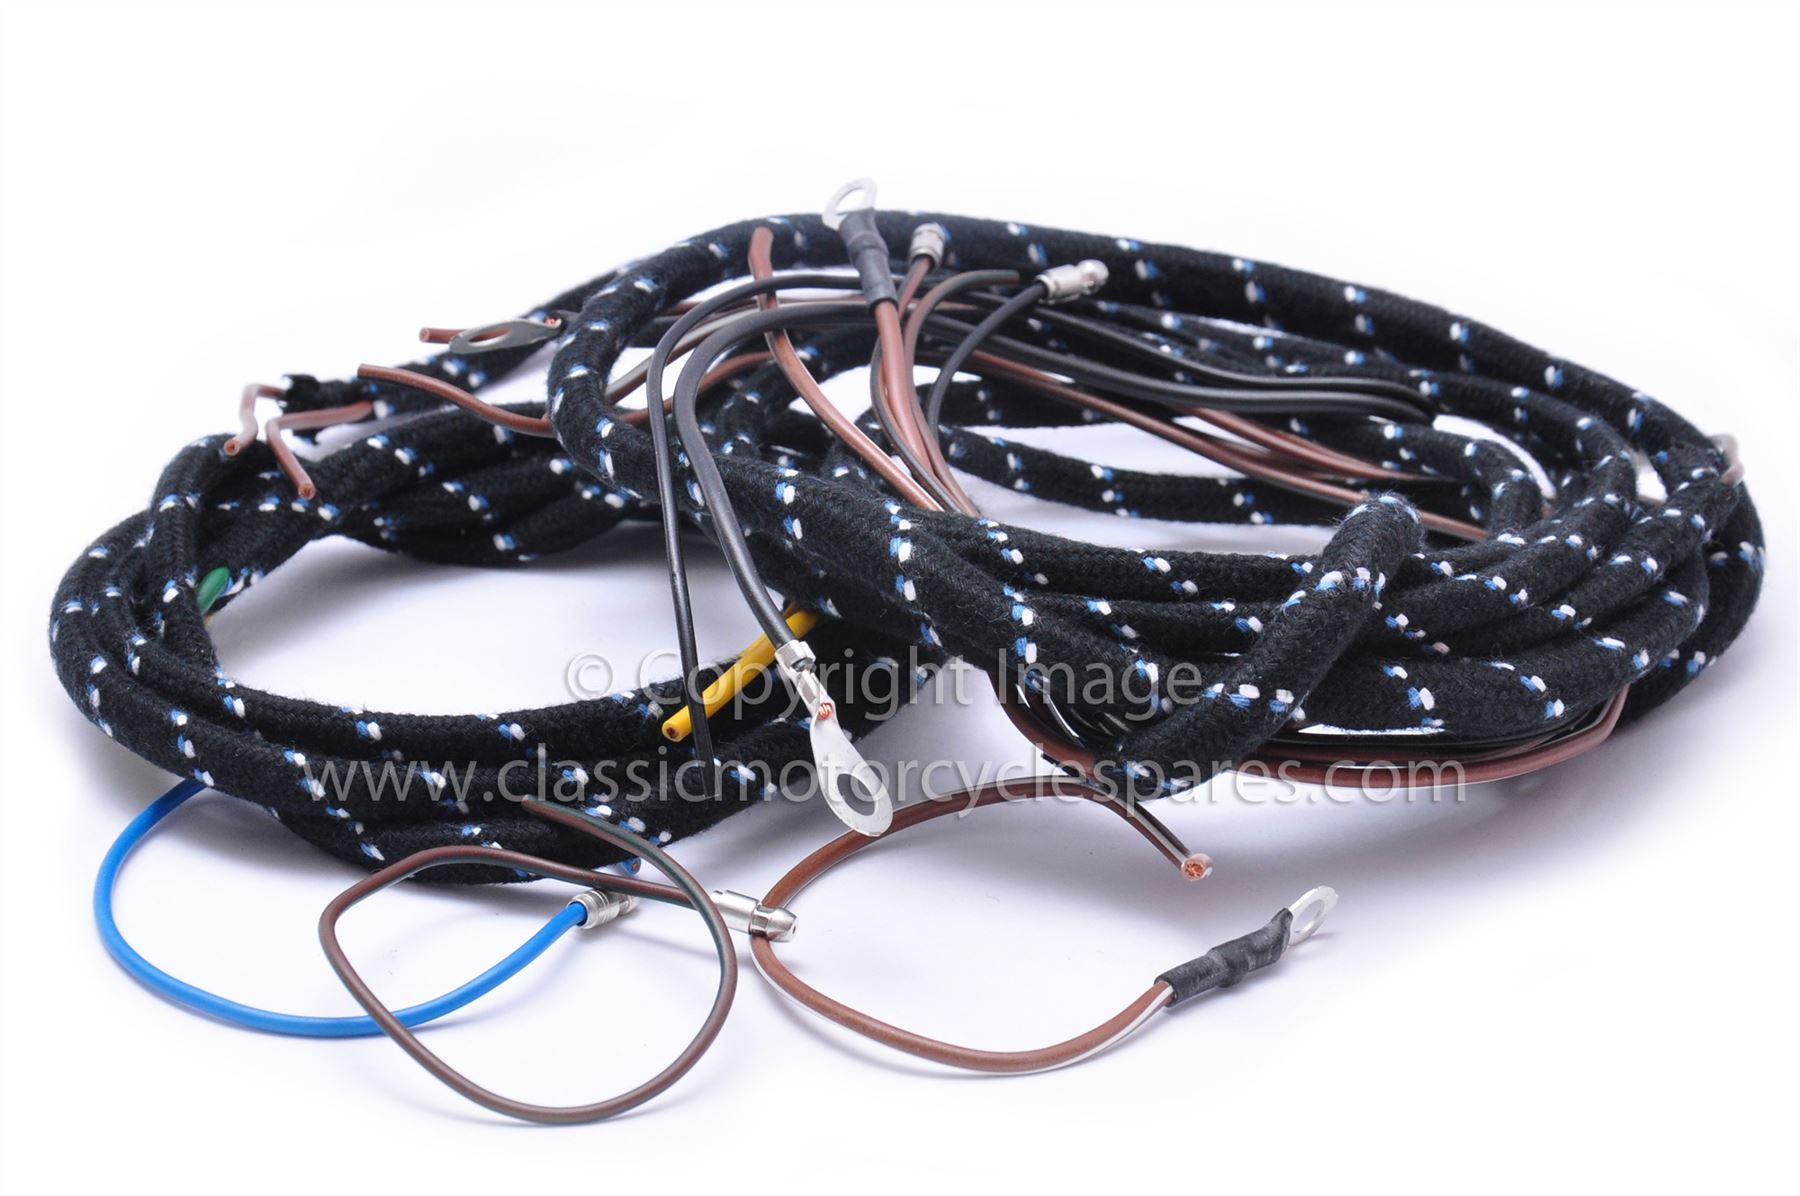 G9 Wiring Harness - Wiring Diagram Online on